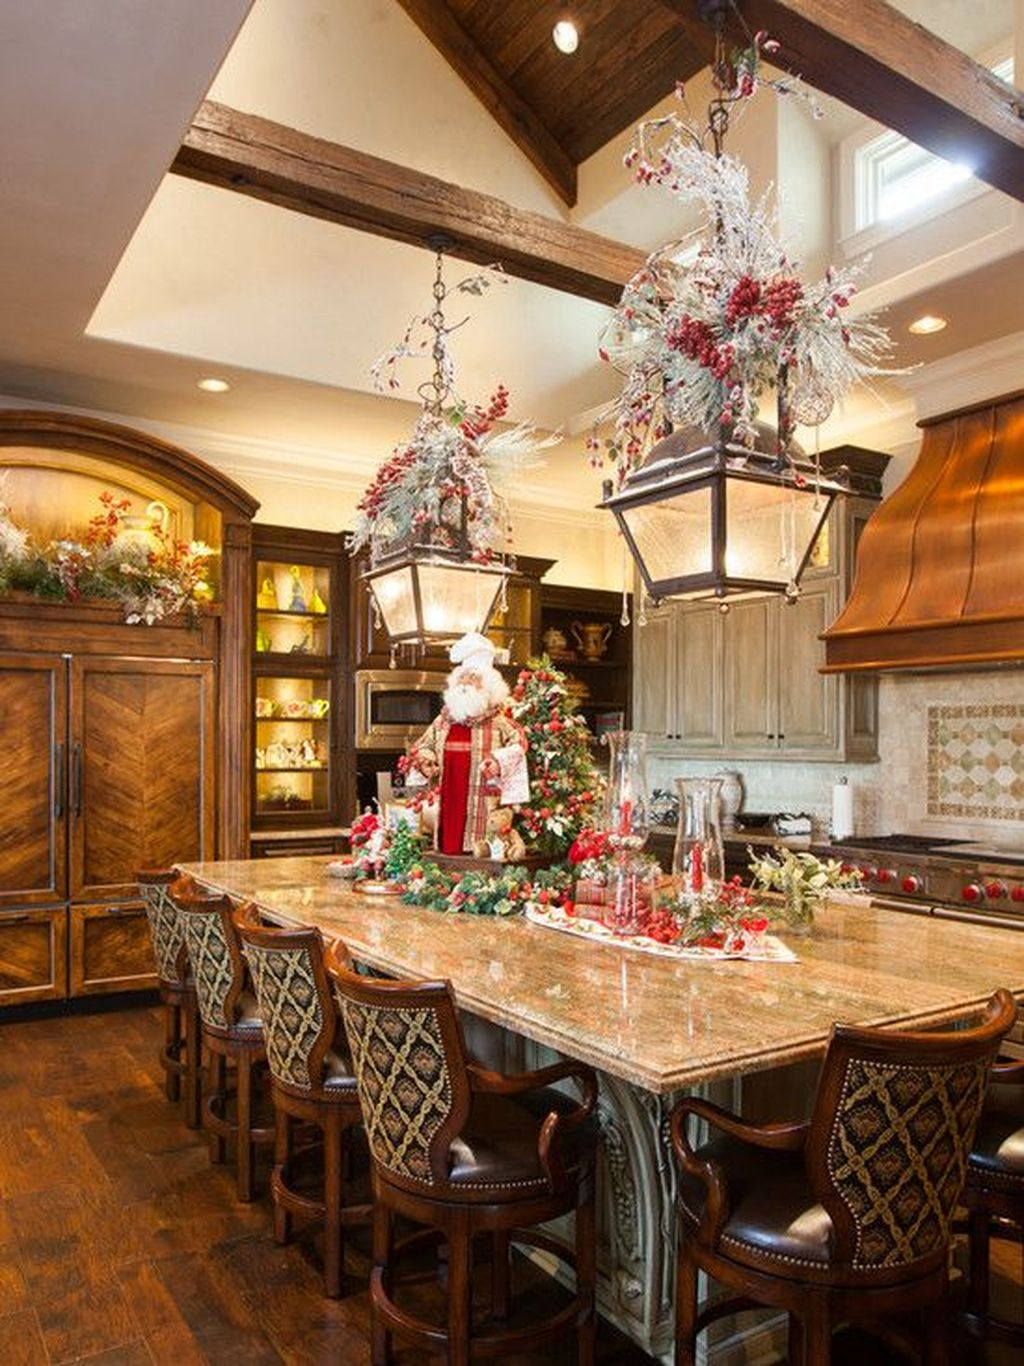 Popular Christmas Decor Ideas For Kitchen Island 23